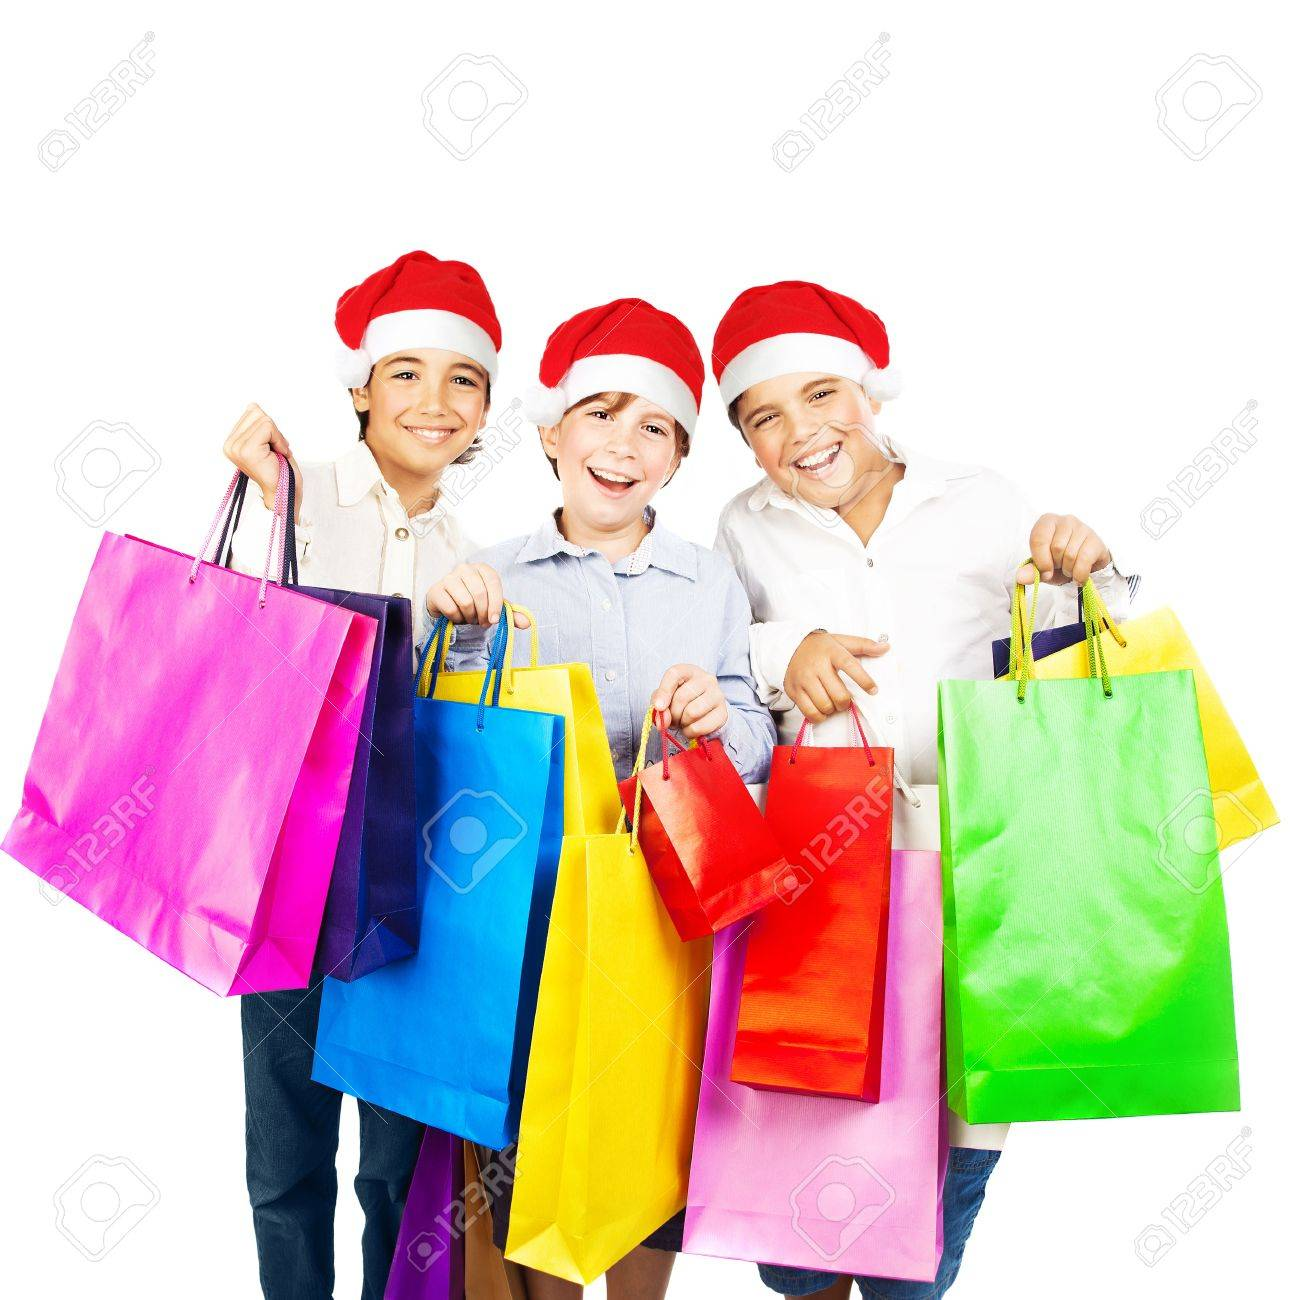 Happy Santa Boys With Gifts, Kids Carrying Colorful Shopping ...